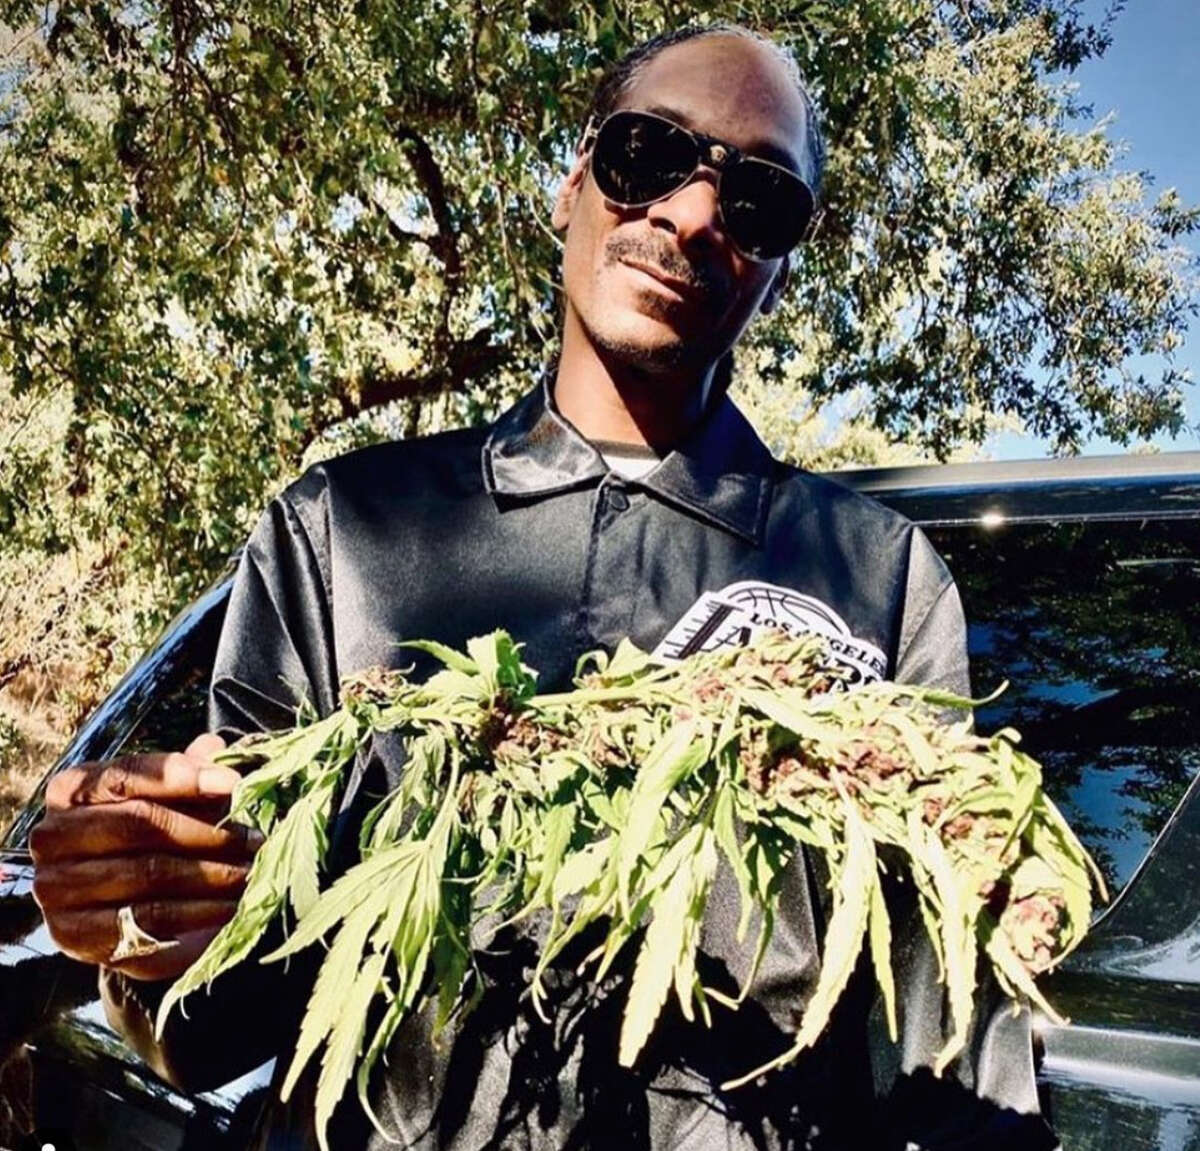 Snoop Dogg is just one of many fans of Huckleberry Hill Farms.